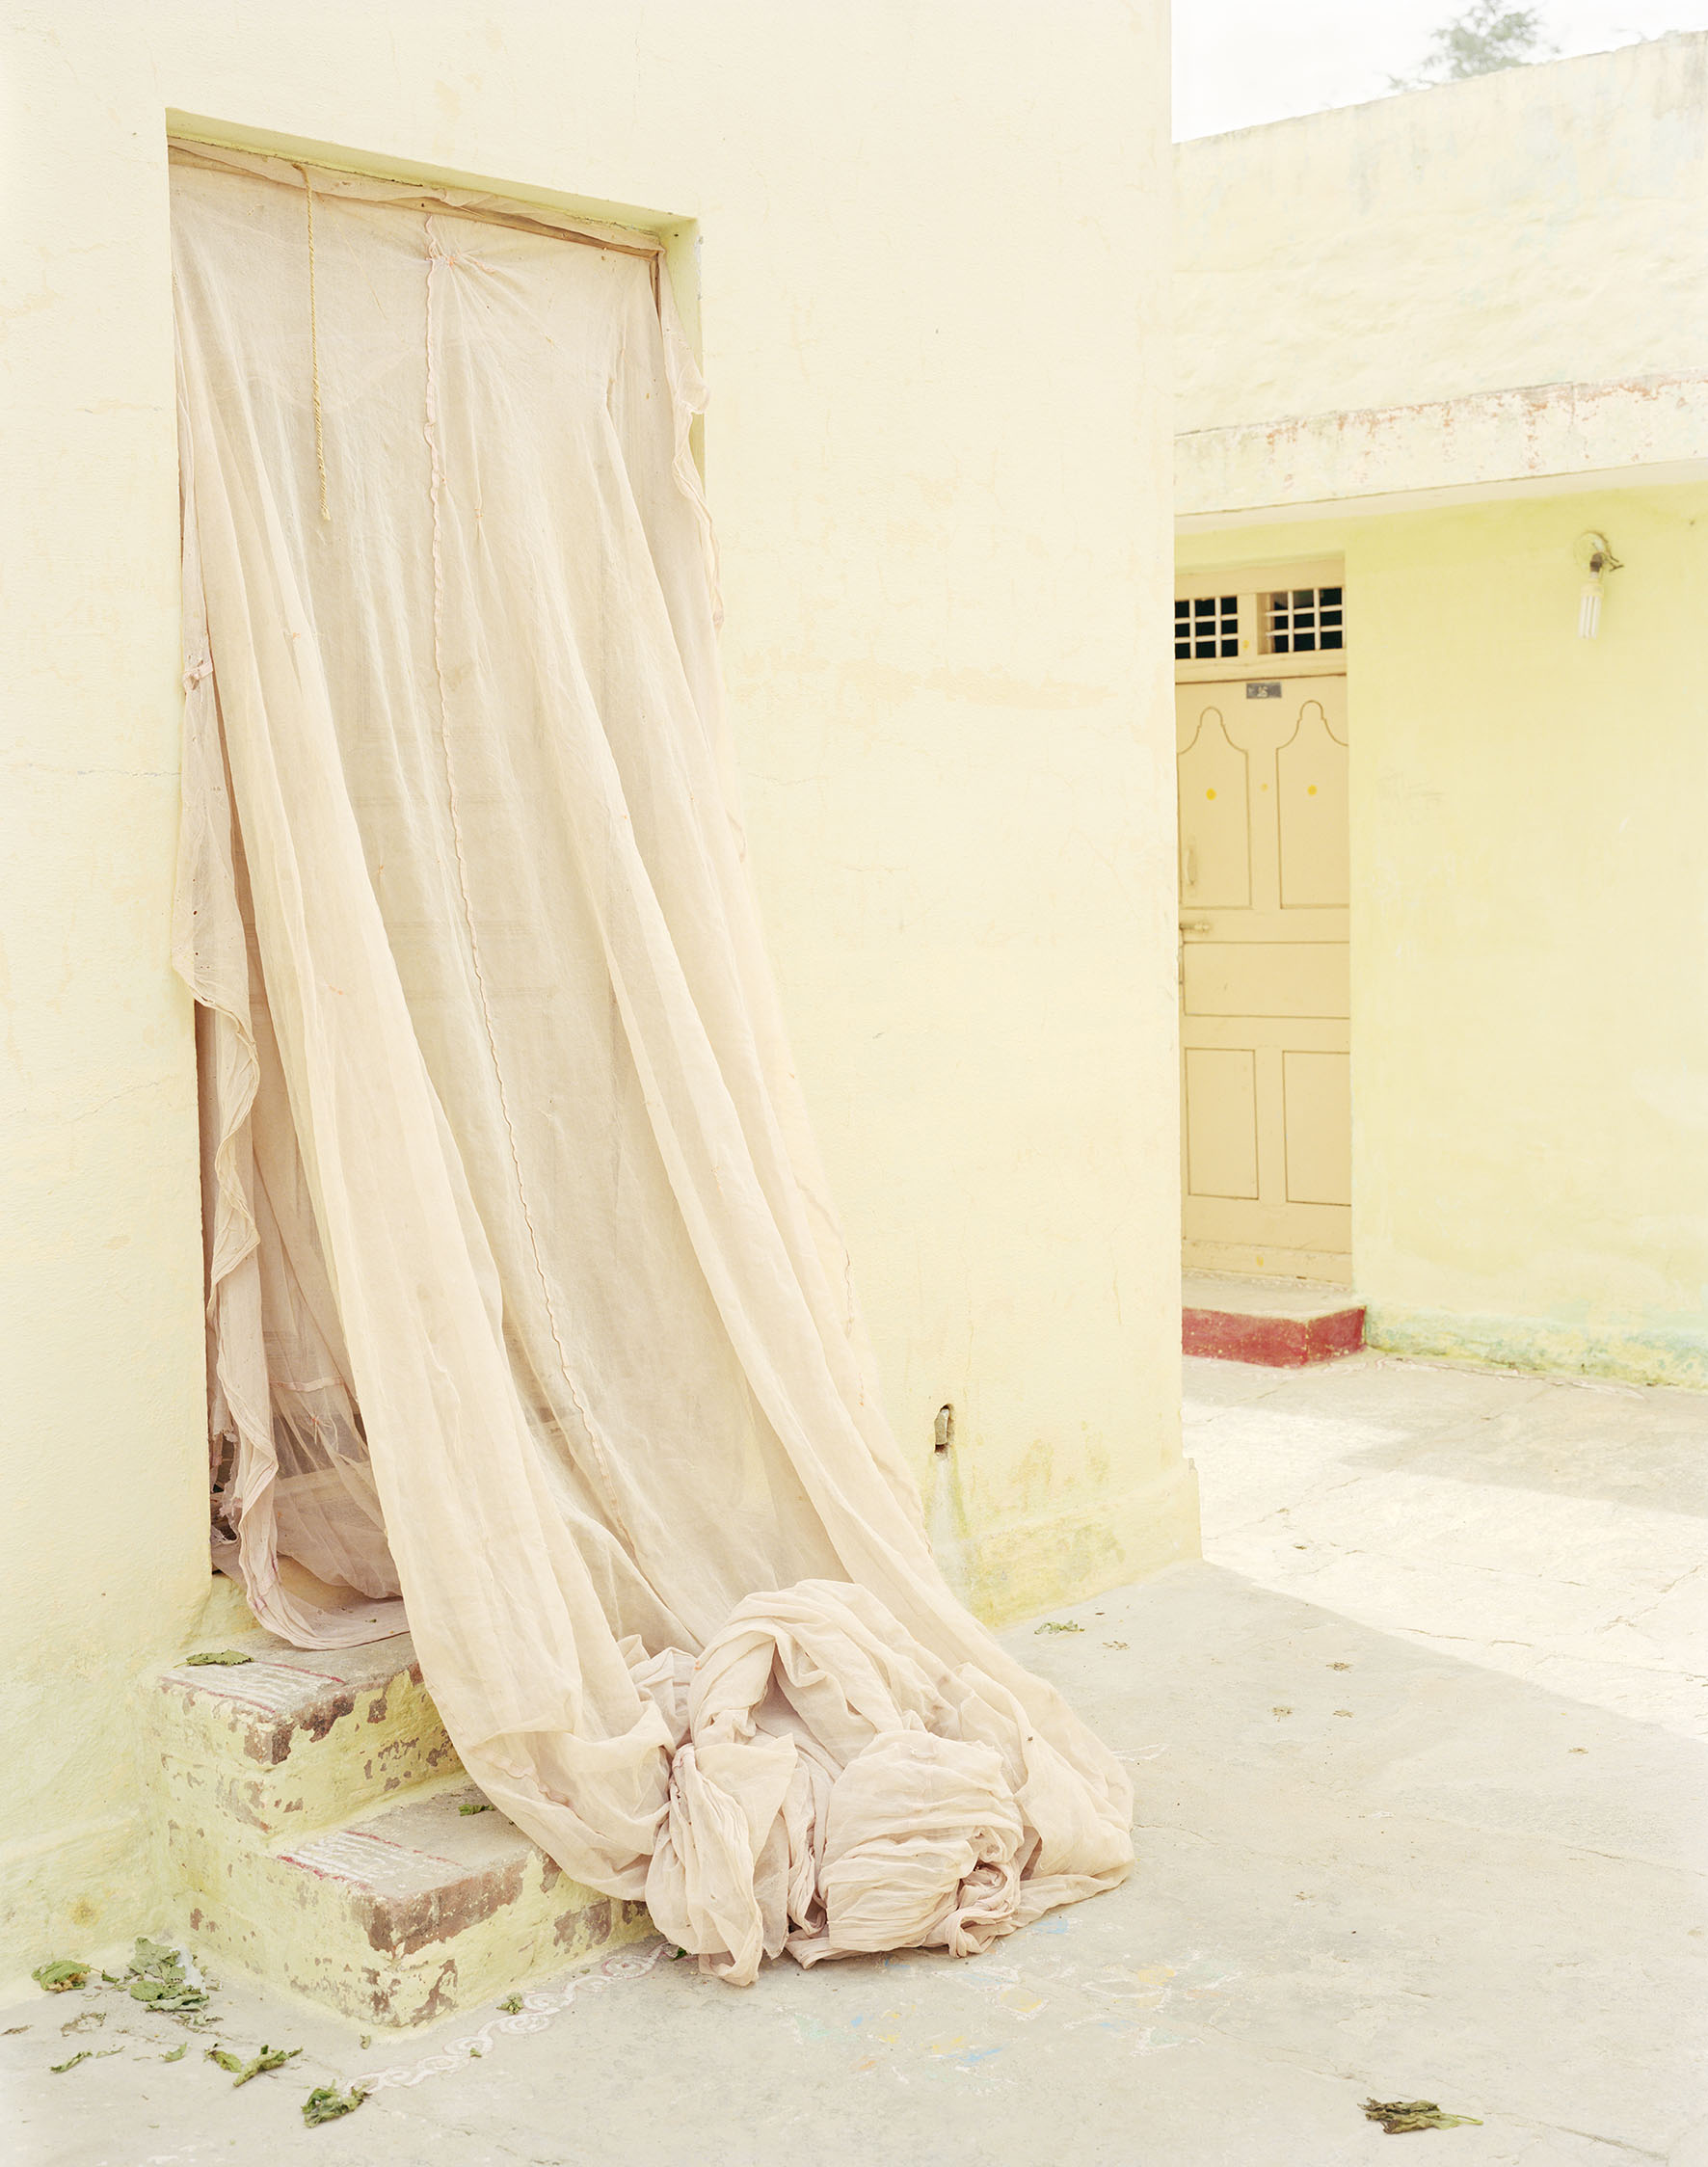 Vasantha Yogananthan, Secret Door, 2016, Archival Inkjet Print on Canson Print Making Rag, 81 x 64 cm. Courtesy of Jhaveri Contemporary.